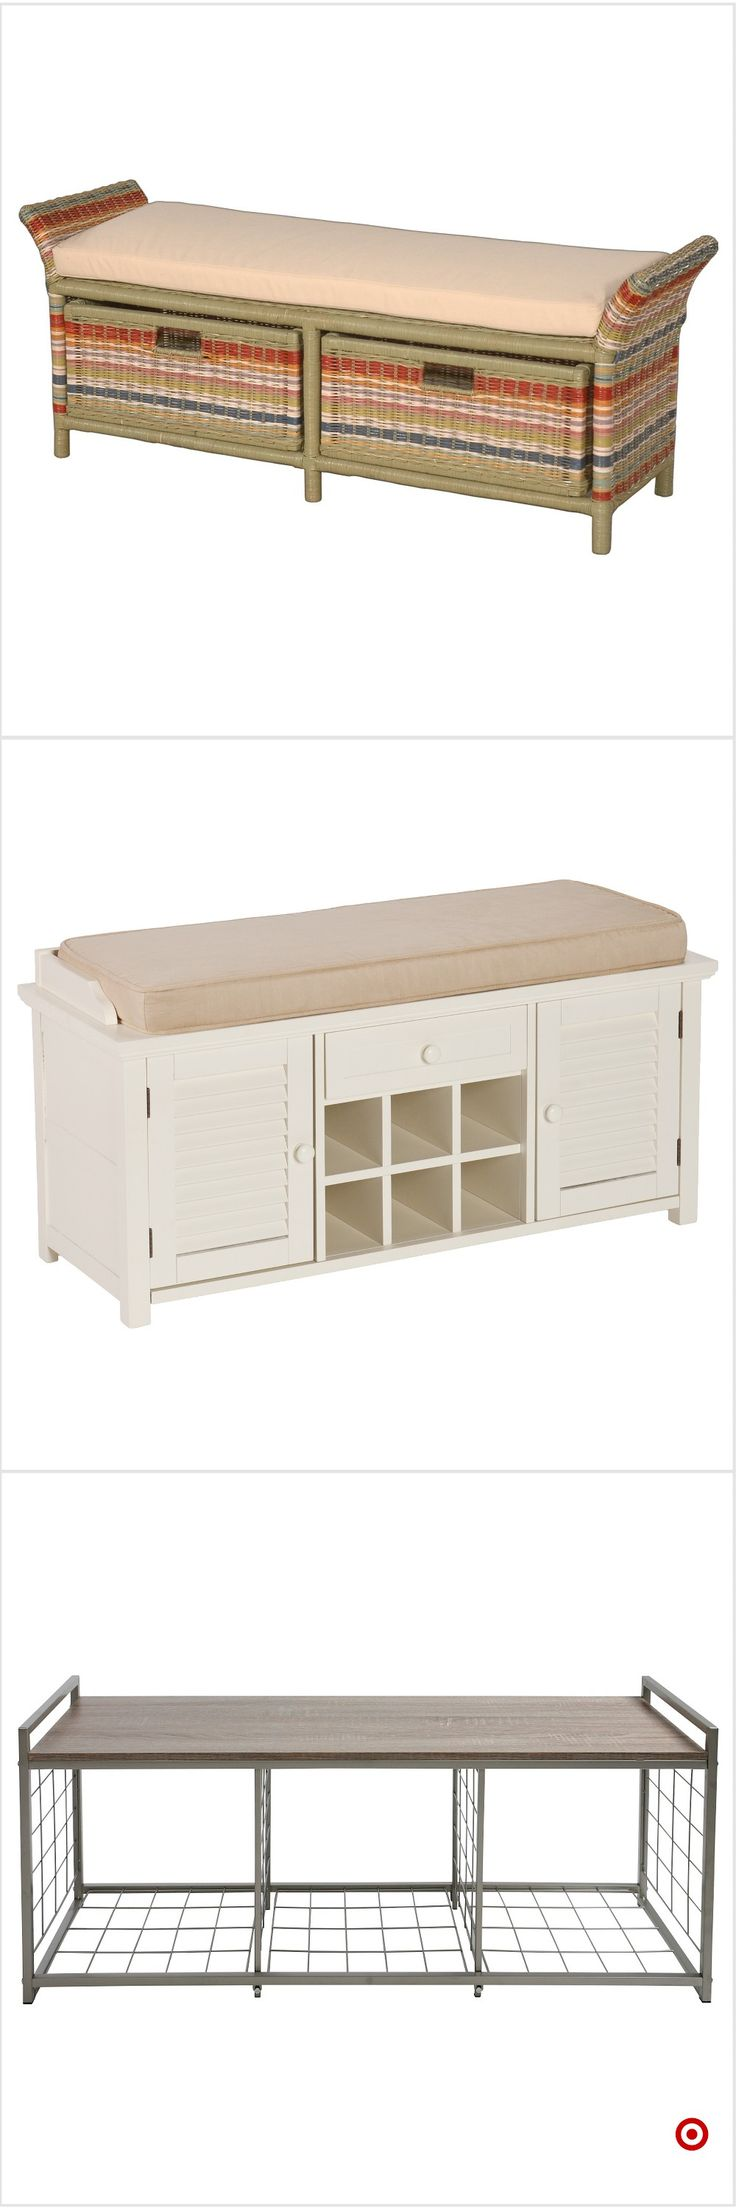 Shop Target for entryway benches  storage benches you will love at great low prices. Free shipping on orders of $35+ or free same-day pick-up in store.